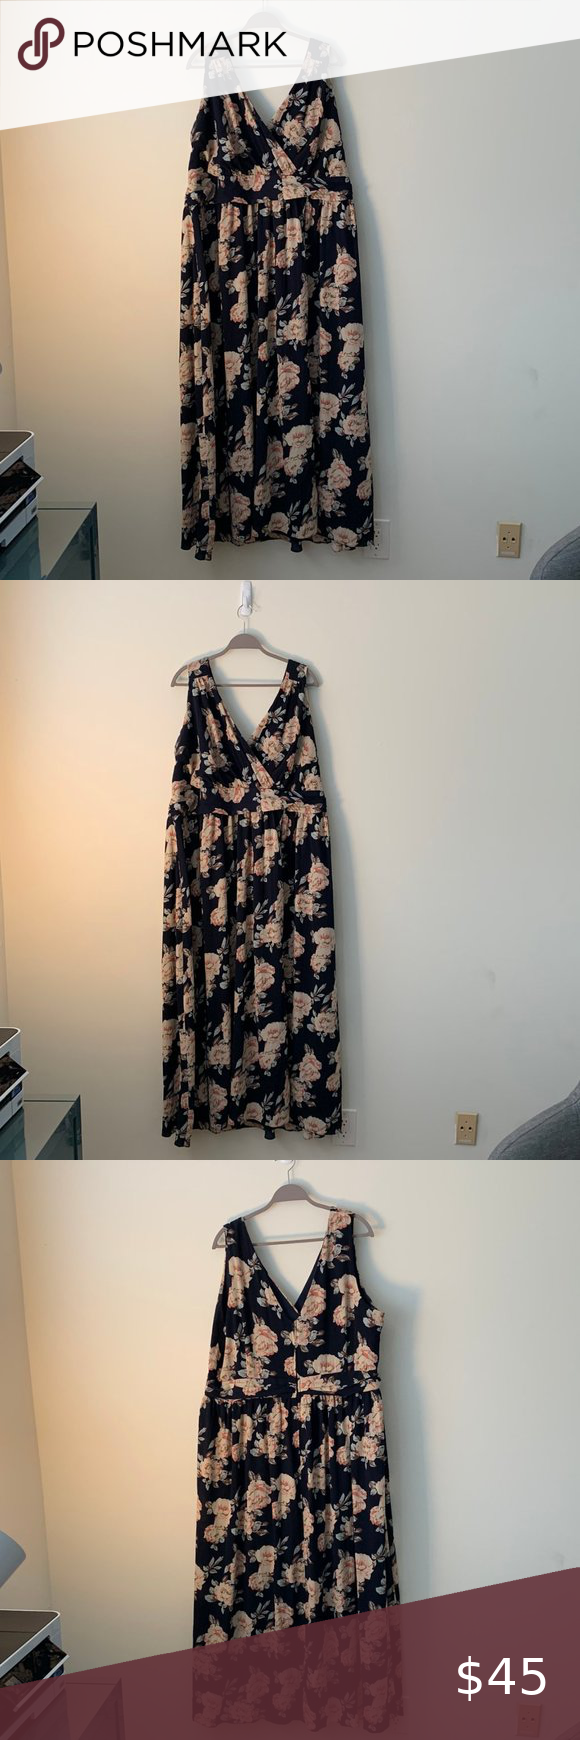 Navy And Pink Floral Maxi Dress Maxi Length Ruched Bodice Dress Size 4x Runs A Little Small Great For Wed In 2020 Pink Floral Maxi Dress Mod Cloth Dresses Maxi Dress [ 1740 x 580 Pixel ]